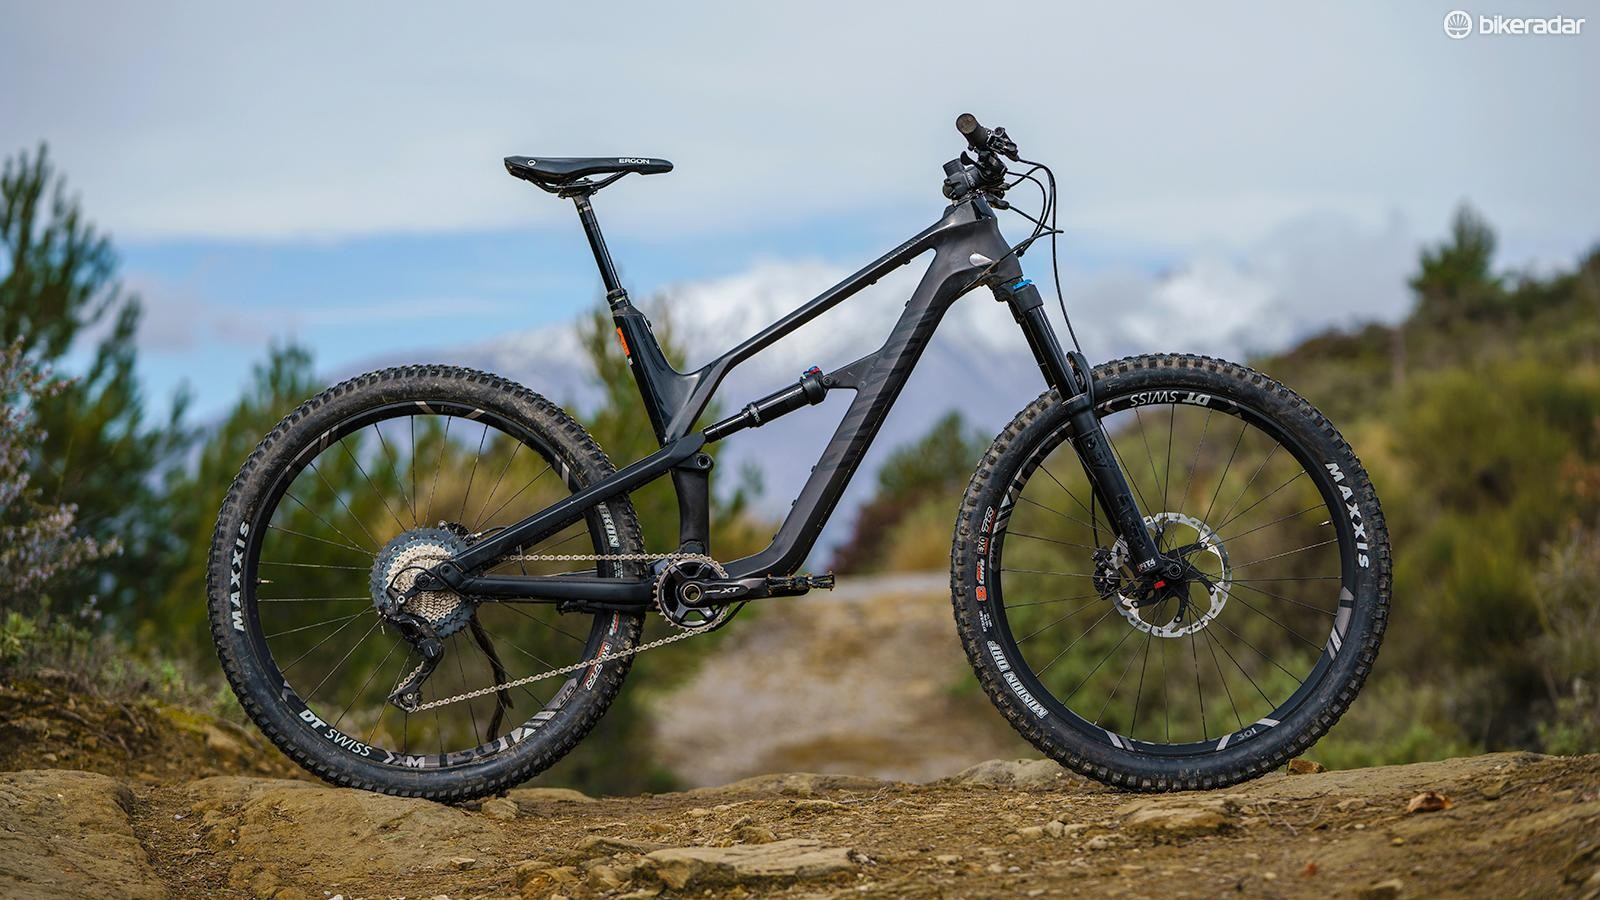 The Canyon Spectral CF 9.0 is all new for 2018